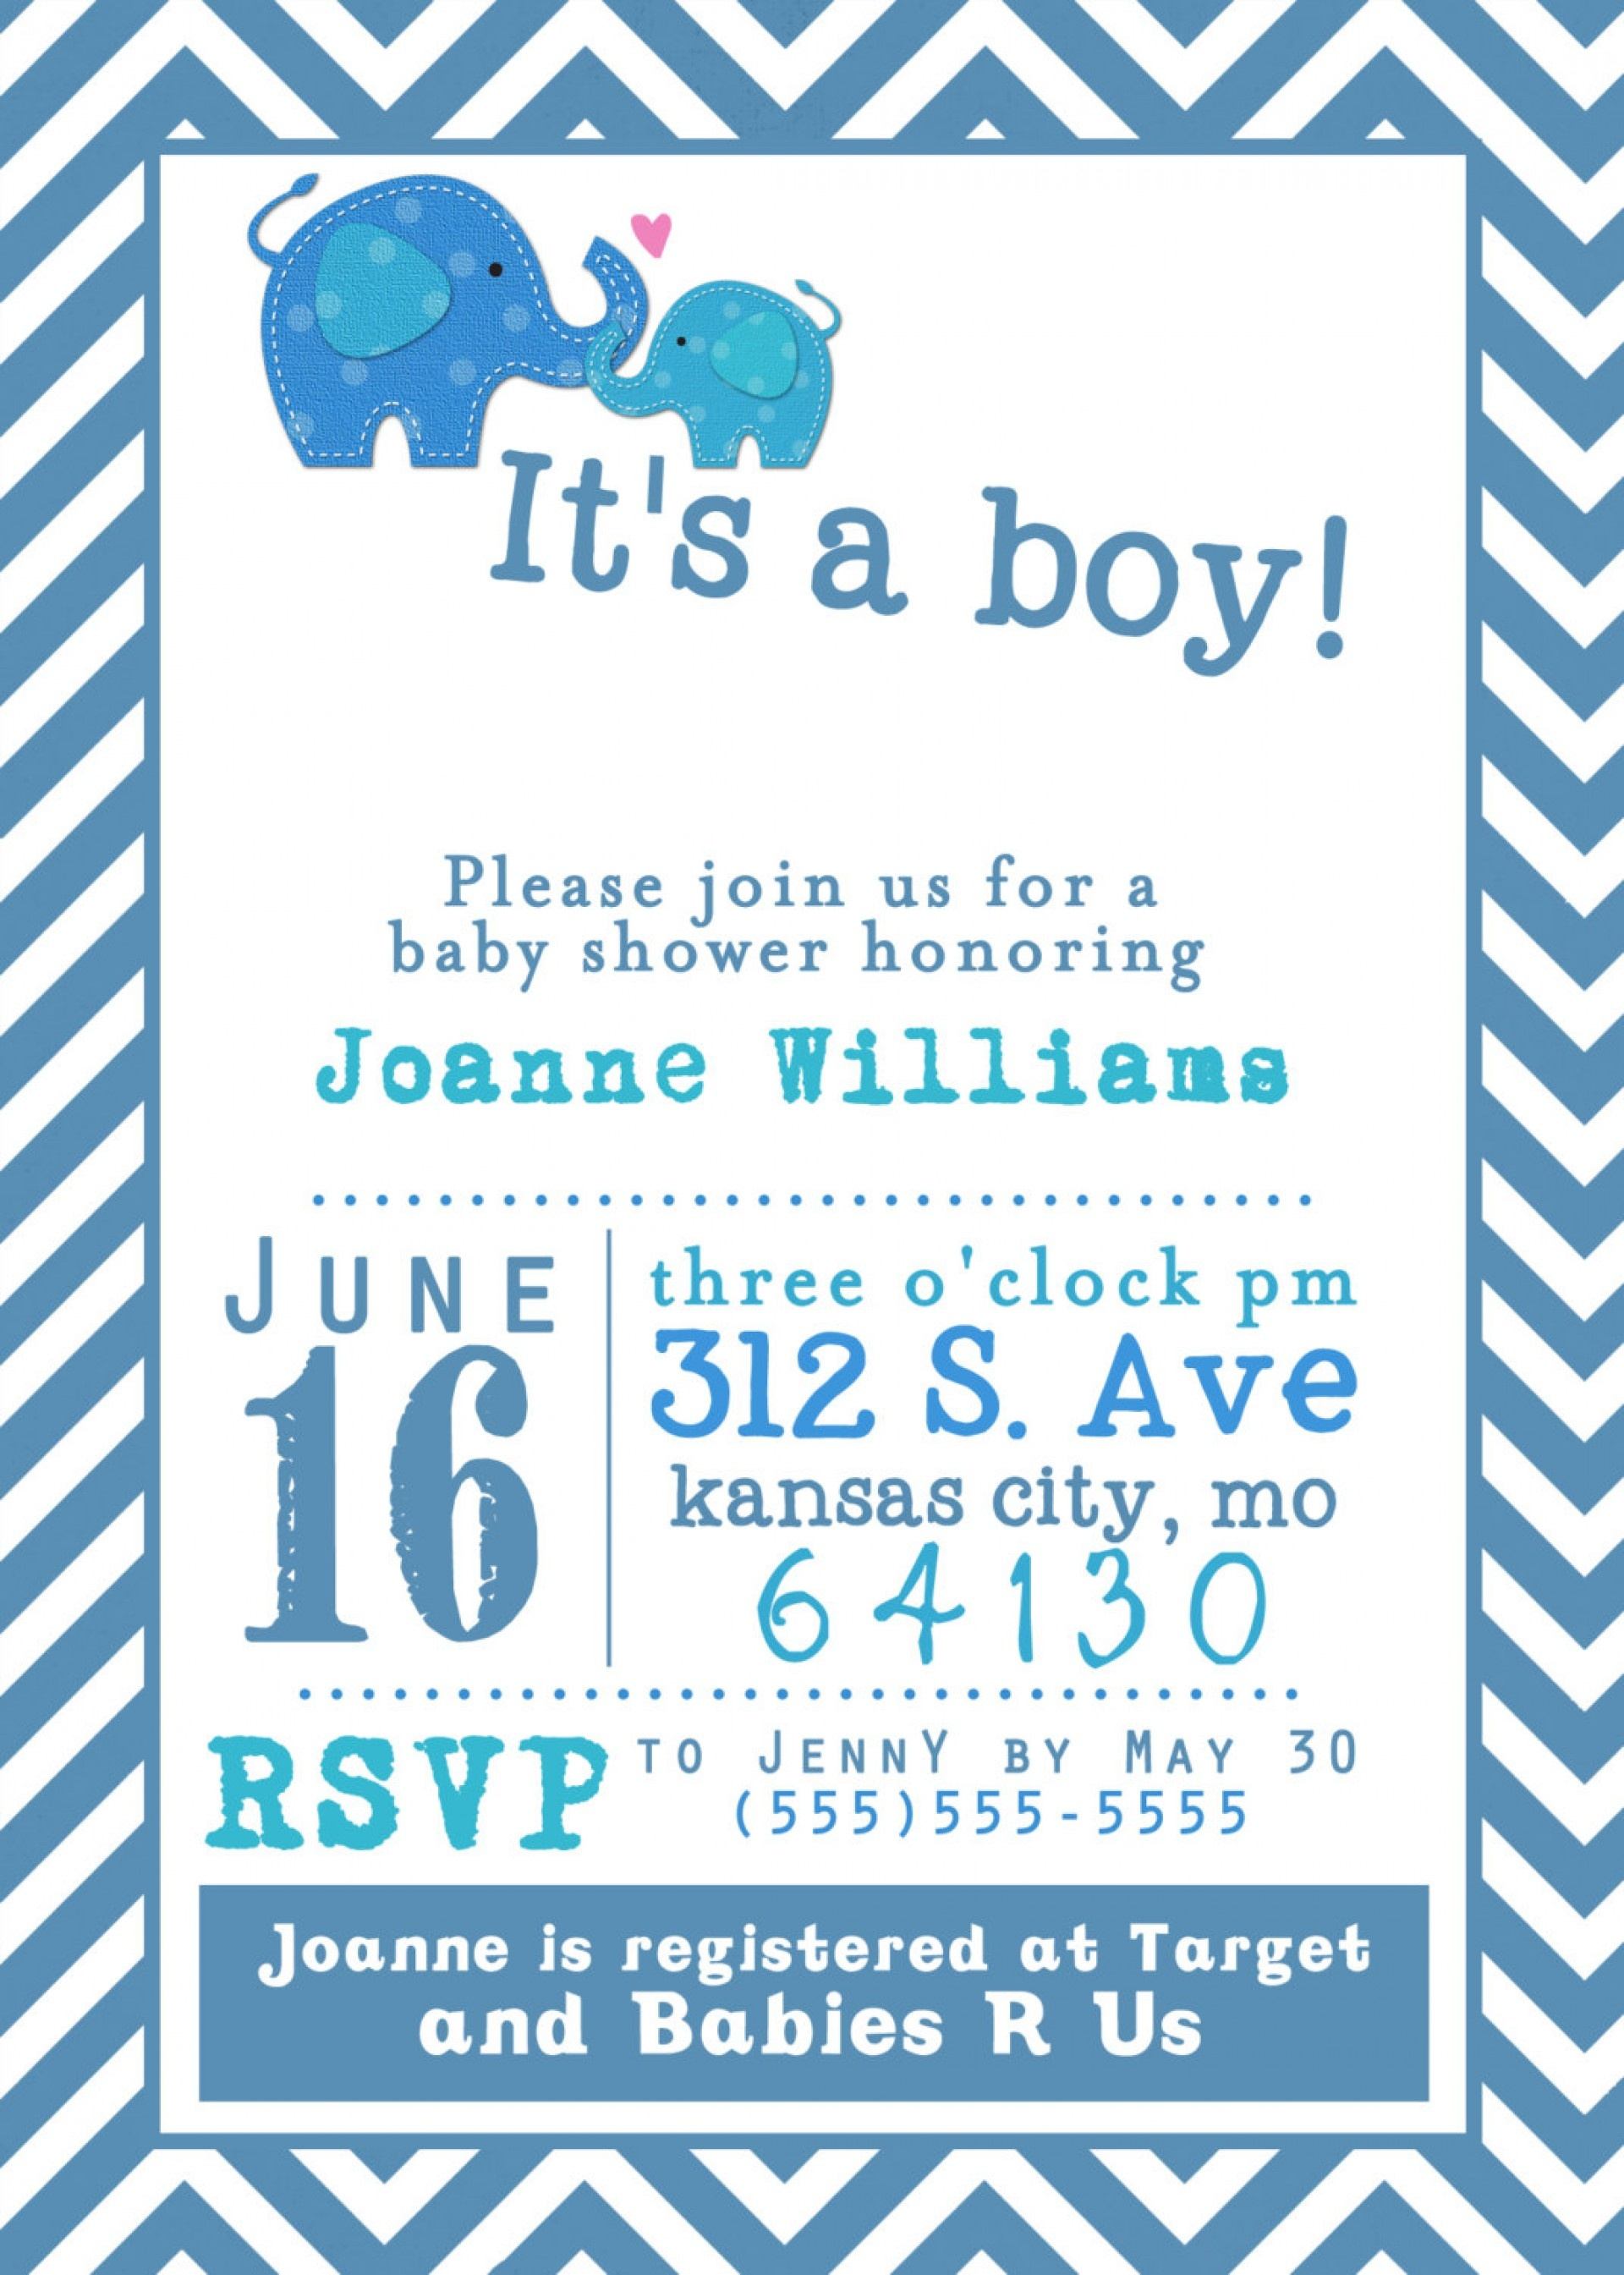 019 Baby Shower Invitation Free Templates Template Ideas Printable - Baby Shower Invitations Free Printable For A Boy